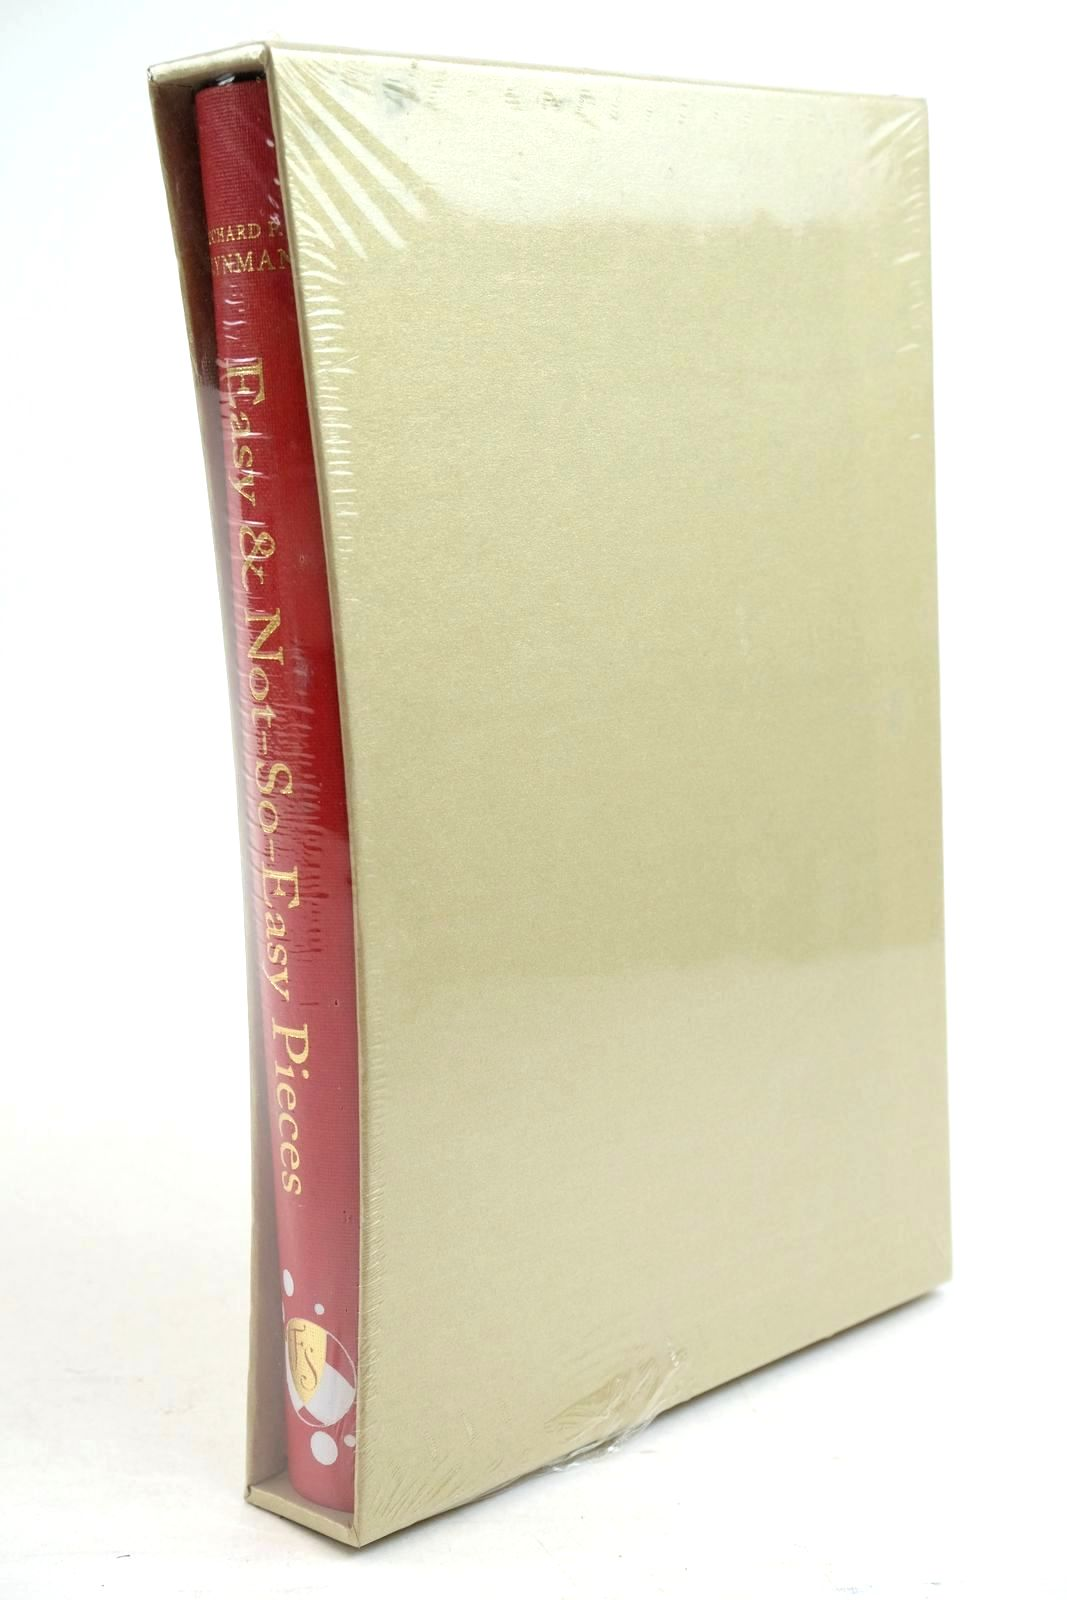 Photo of EASY & NOT-SO-EASY PIECES written by Feynman, Richard Penrose, Roger published by Folio Society (STOCK CODE: 1321054)  for sale by Stella & Rose's Books